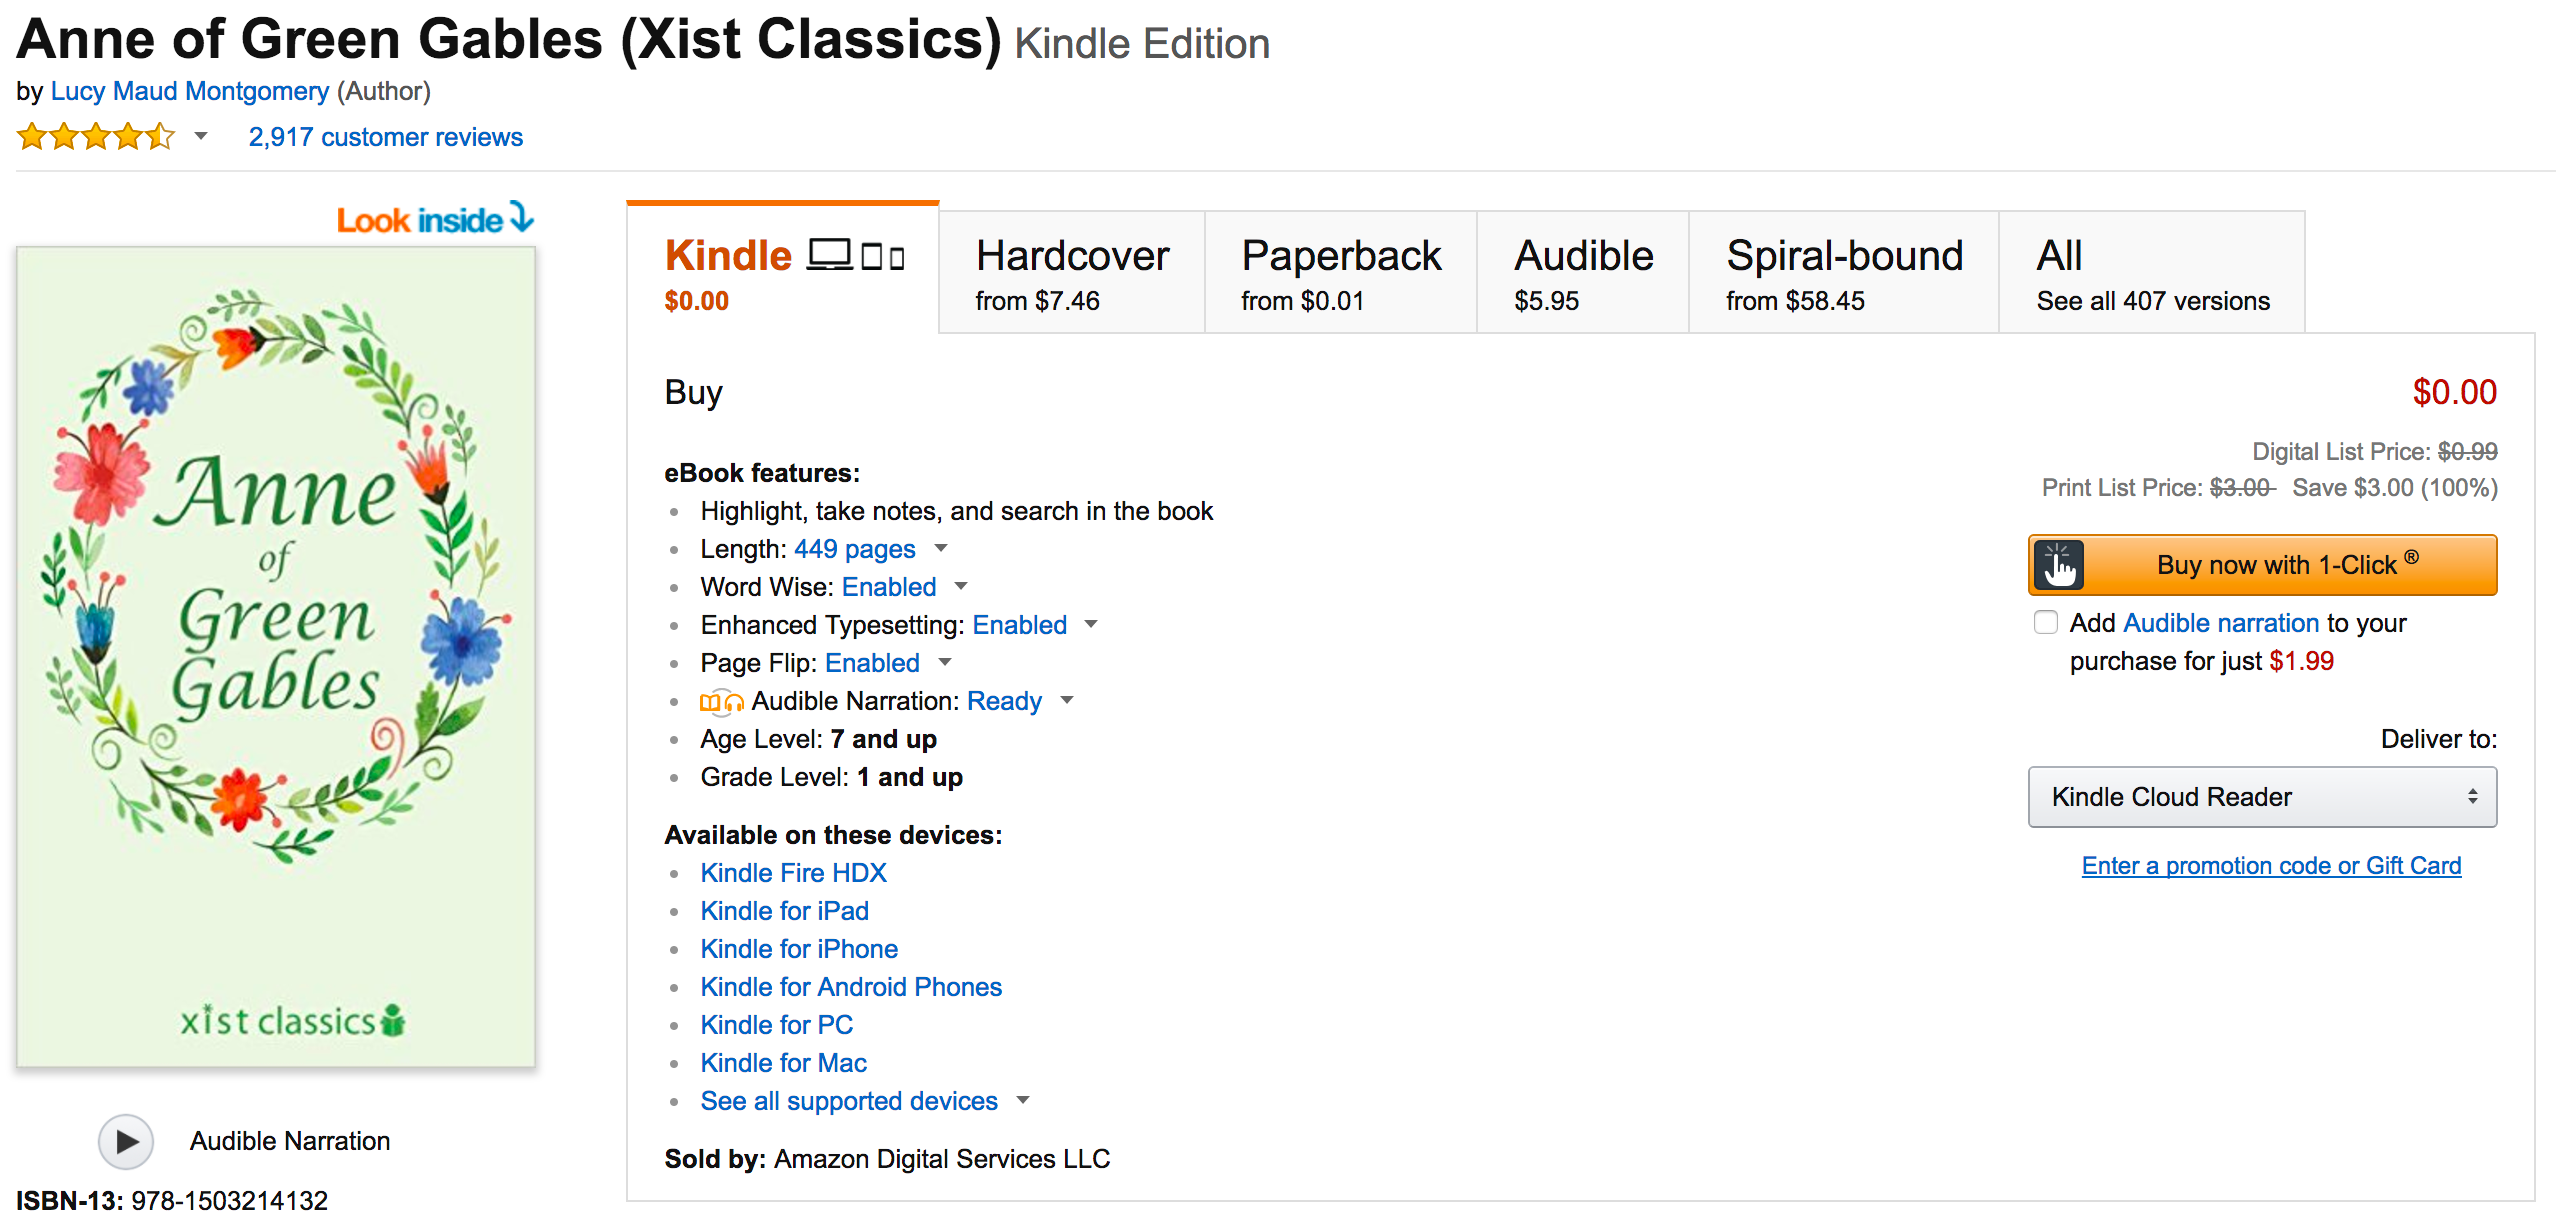 Download a classic for Free: Anne of Green Gables Kindle